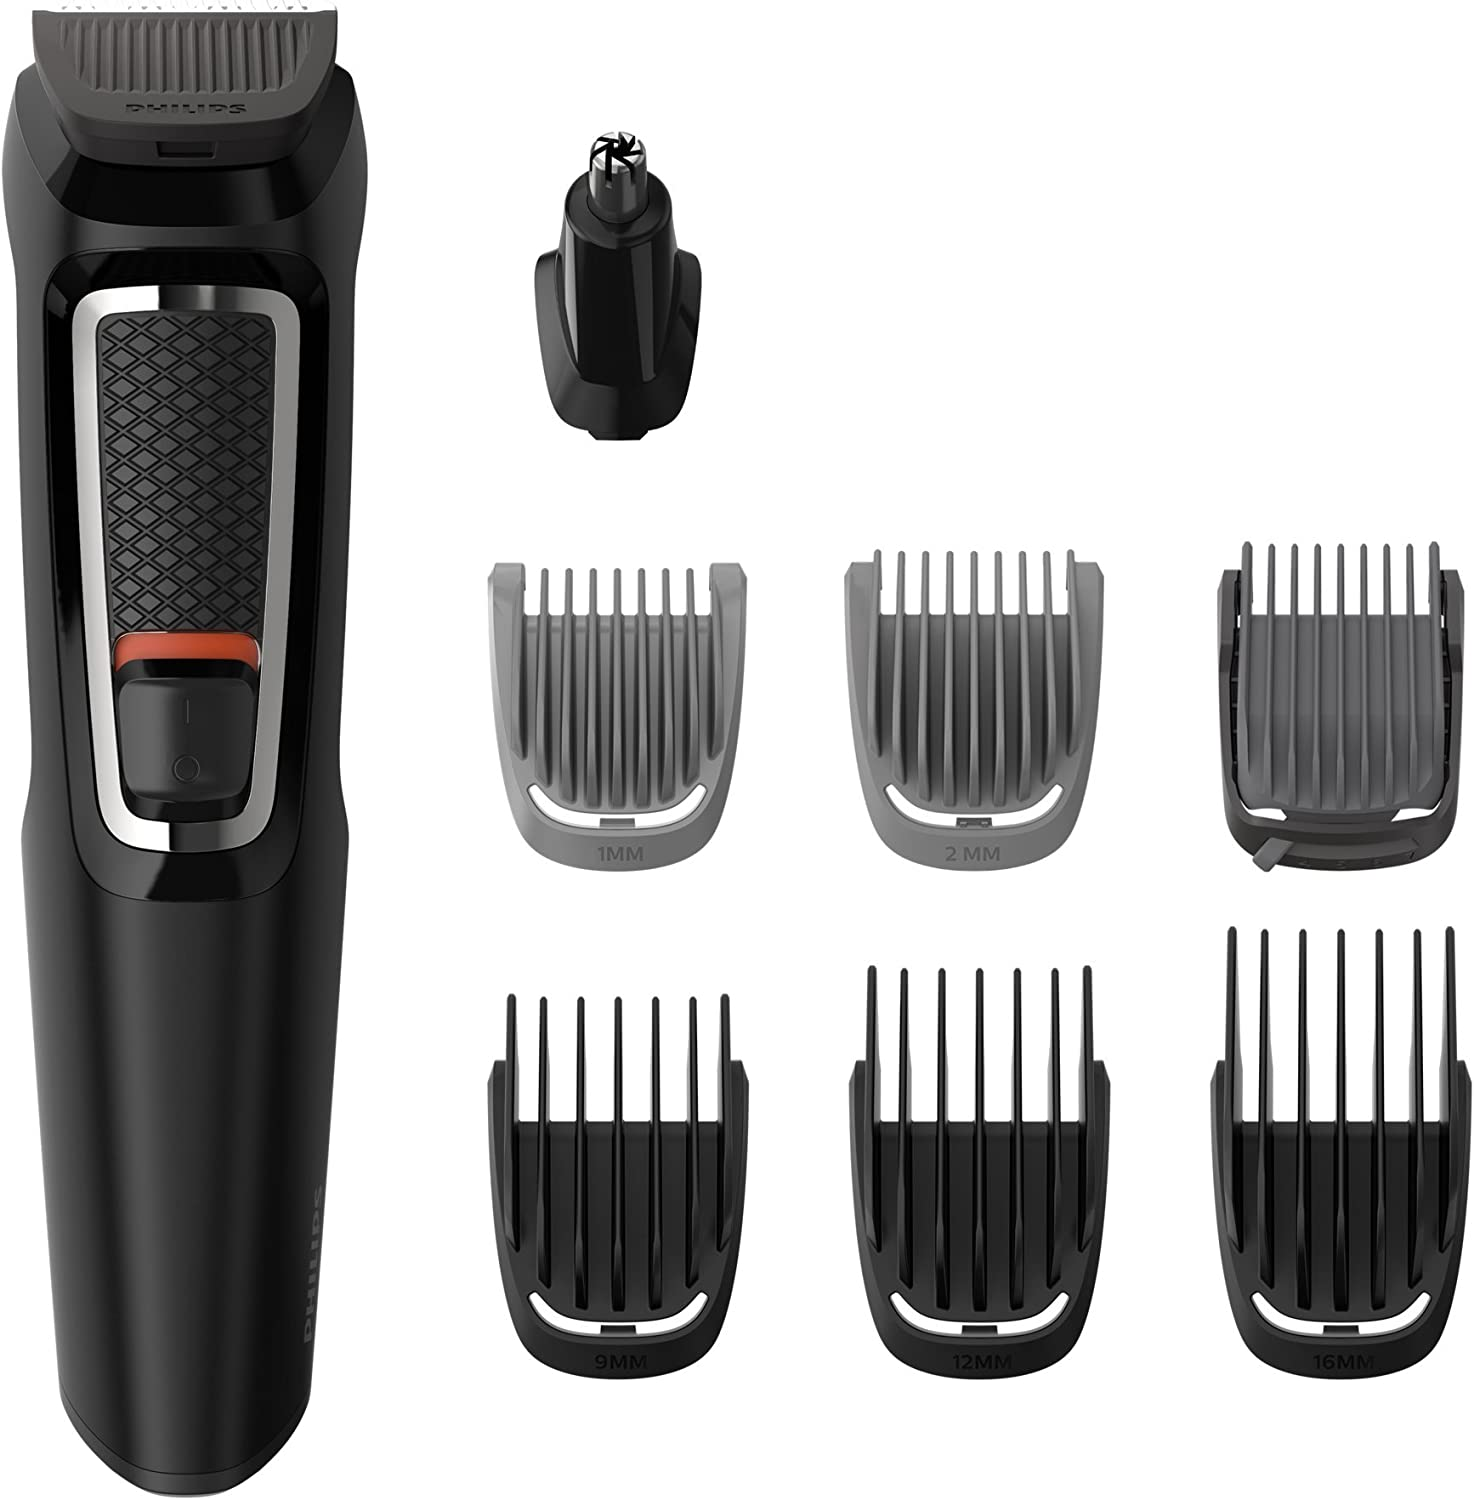 Philips MG3730/15 Recortadora para barba y pelo, 8 en 1 ...